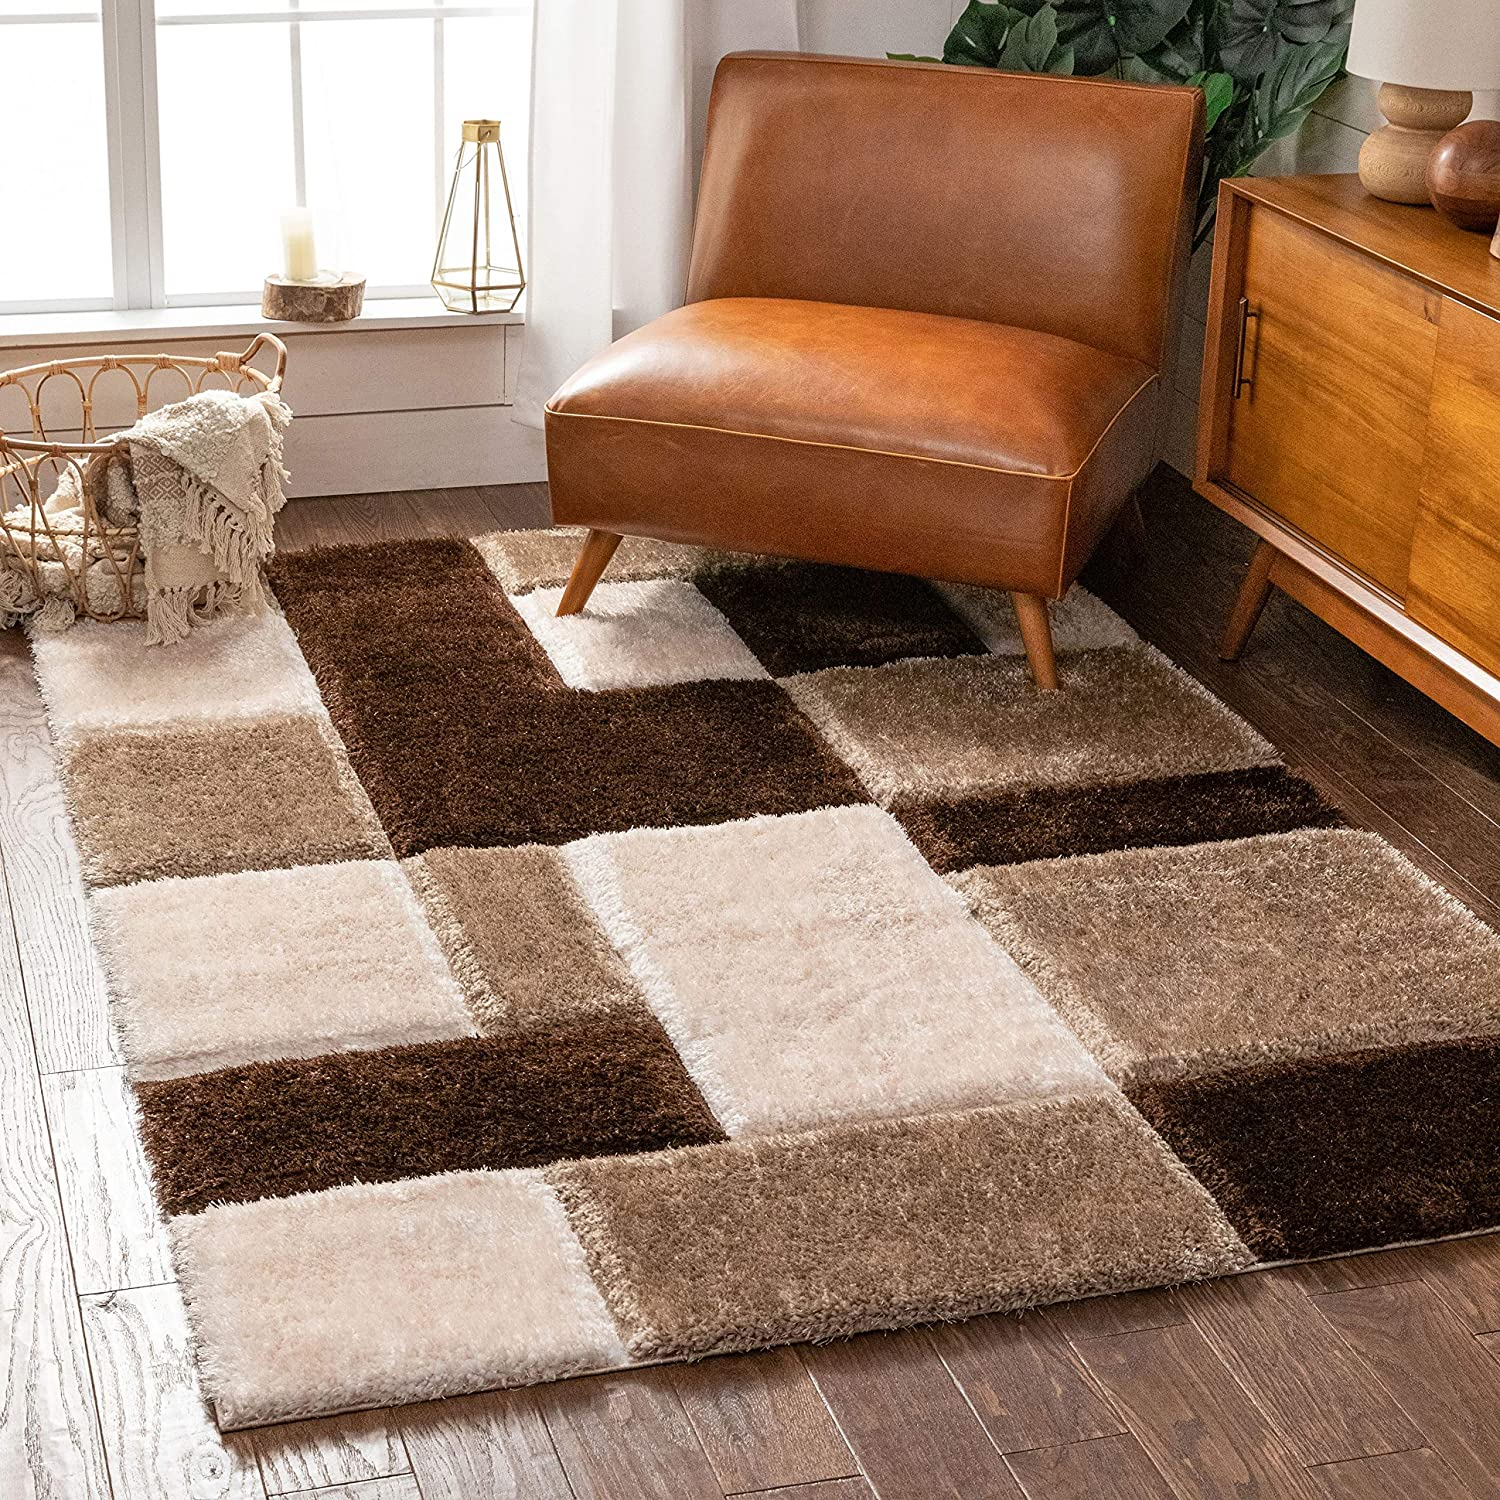 Well Woven Be super welcome Ella Brown Geometric Max 73% OFF Boxes Textur Soft Plush Thick 3D